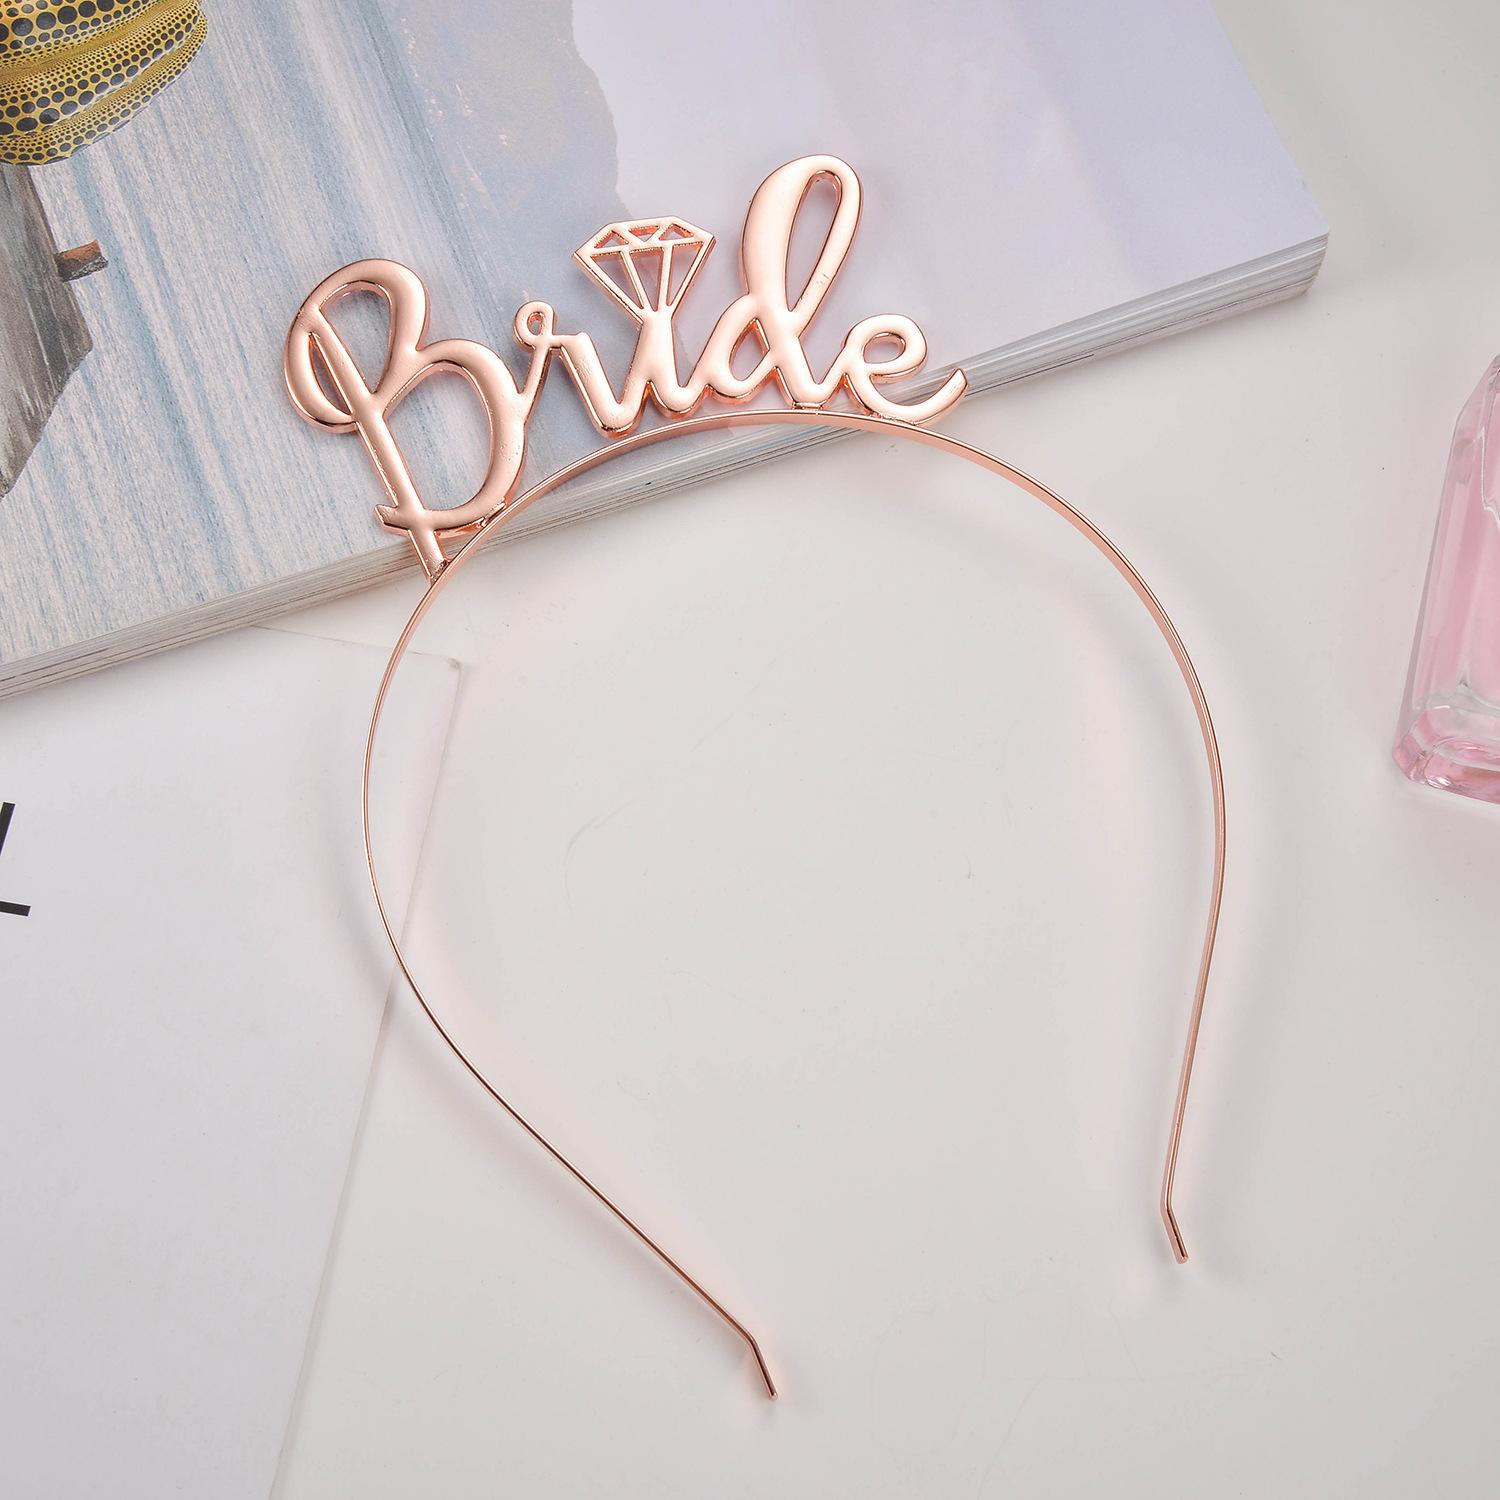 Rose Gold Silver Bride To Be Crown Tiara Headband for Wedding Bachelorette Party Bridal Shower Decoration Supplies Favor Gifts